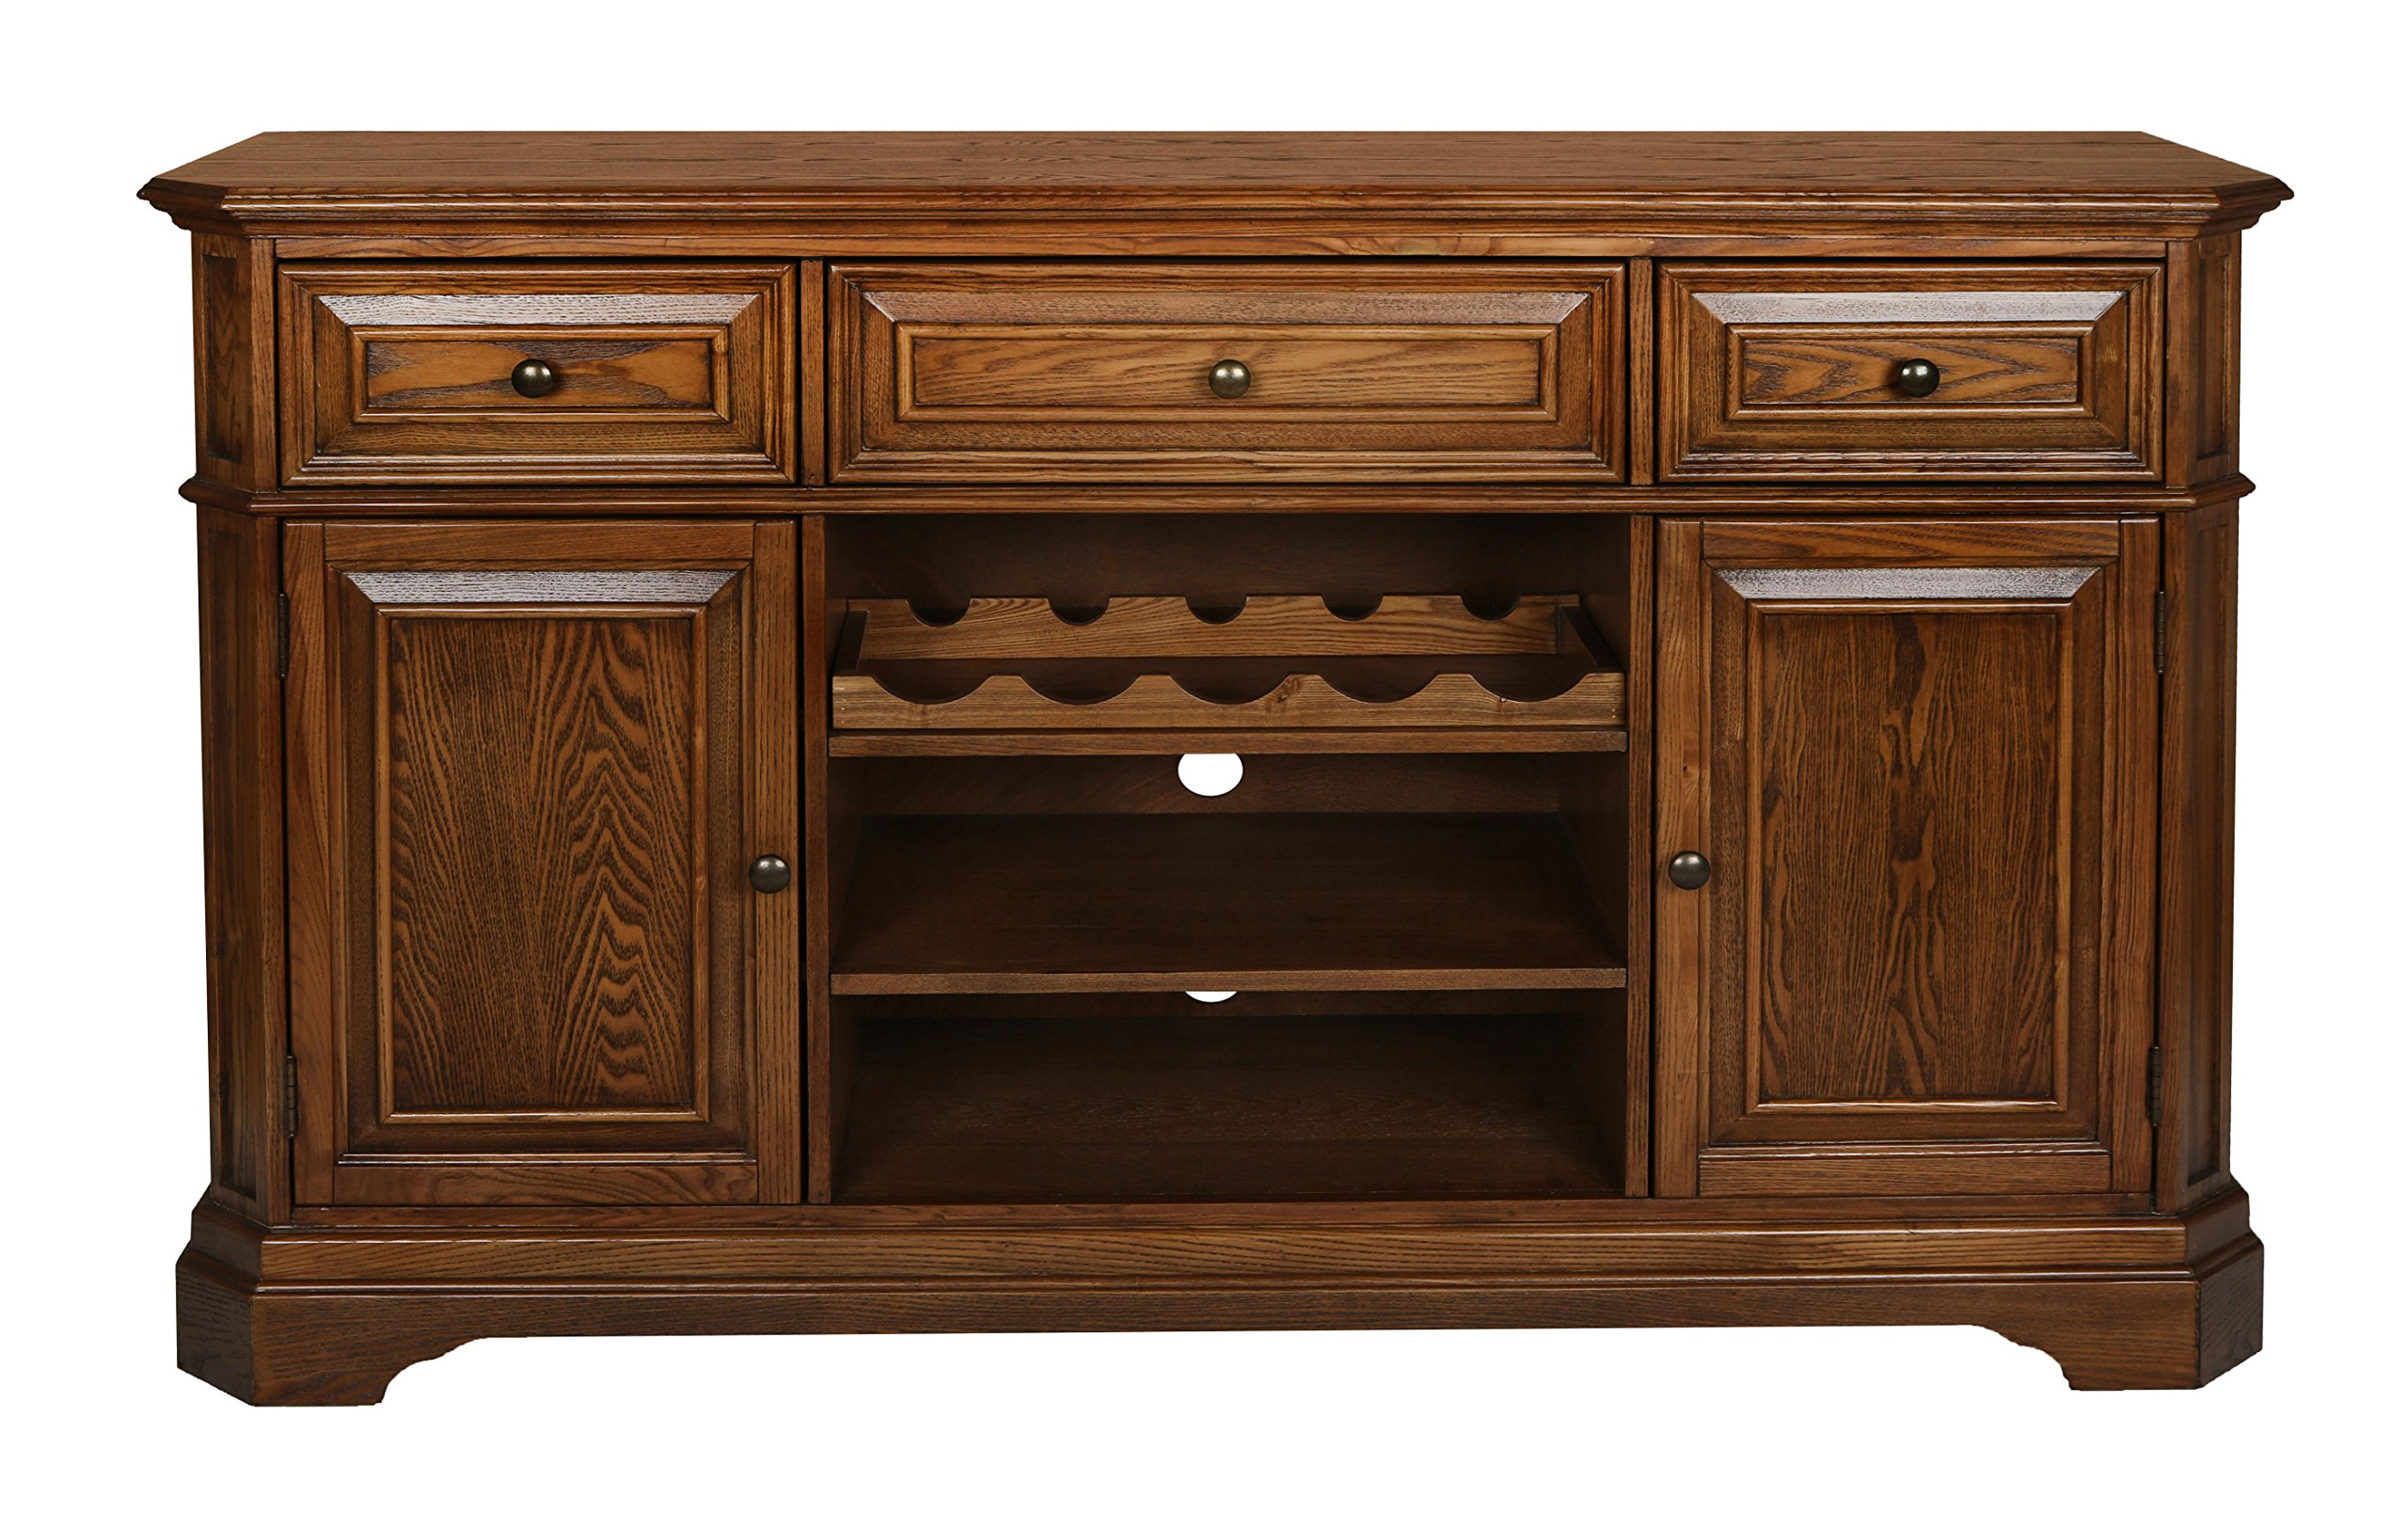 New Classic Oakridge Entertainment Tawny Console by New Classic Furniture